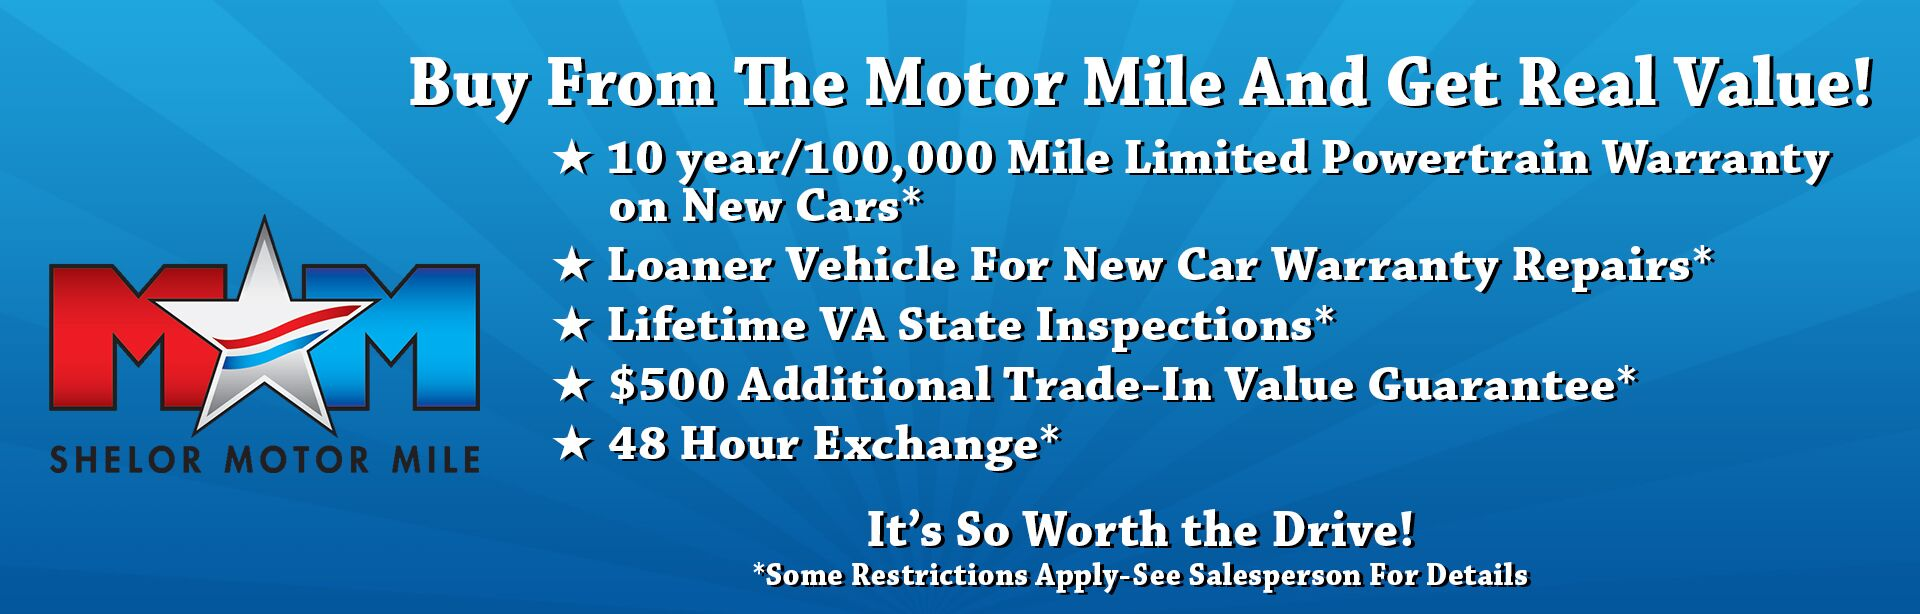 Buy from the Motor Mile and Get Real Value!